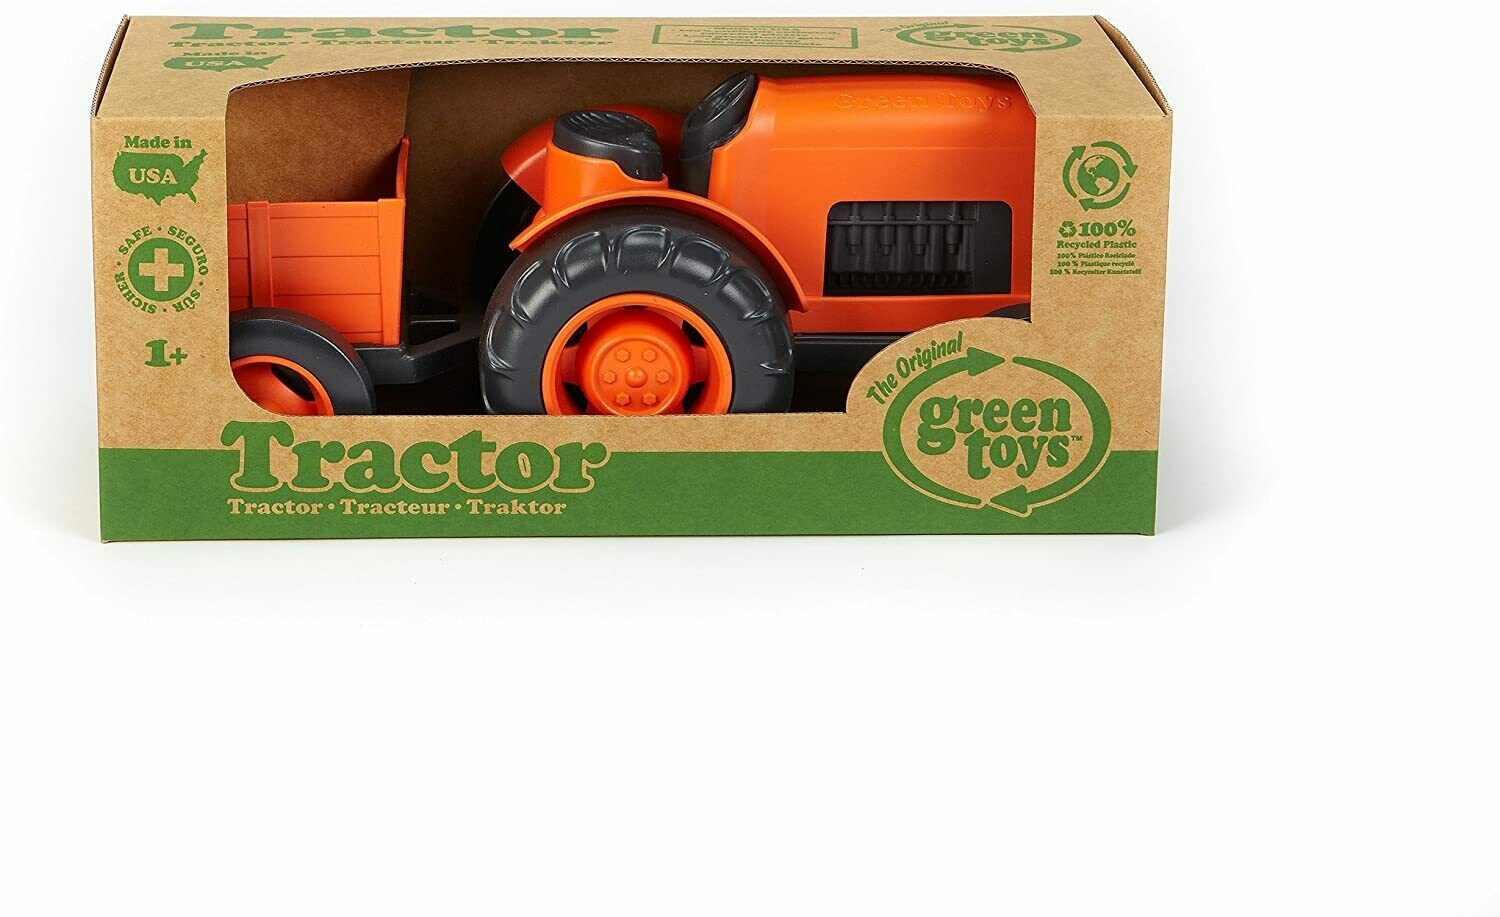 Tractor (Green toys)